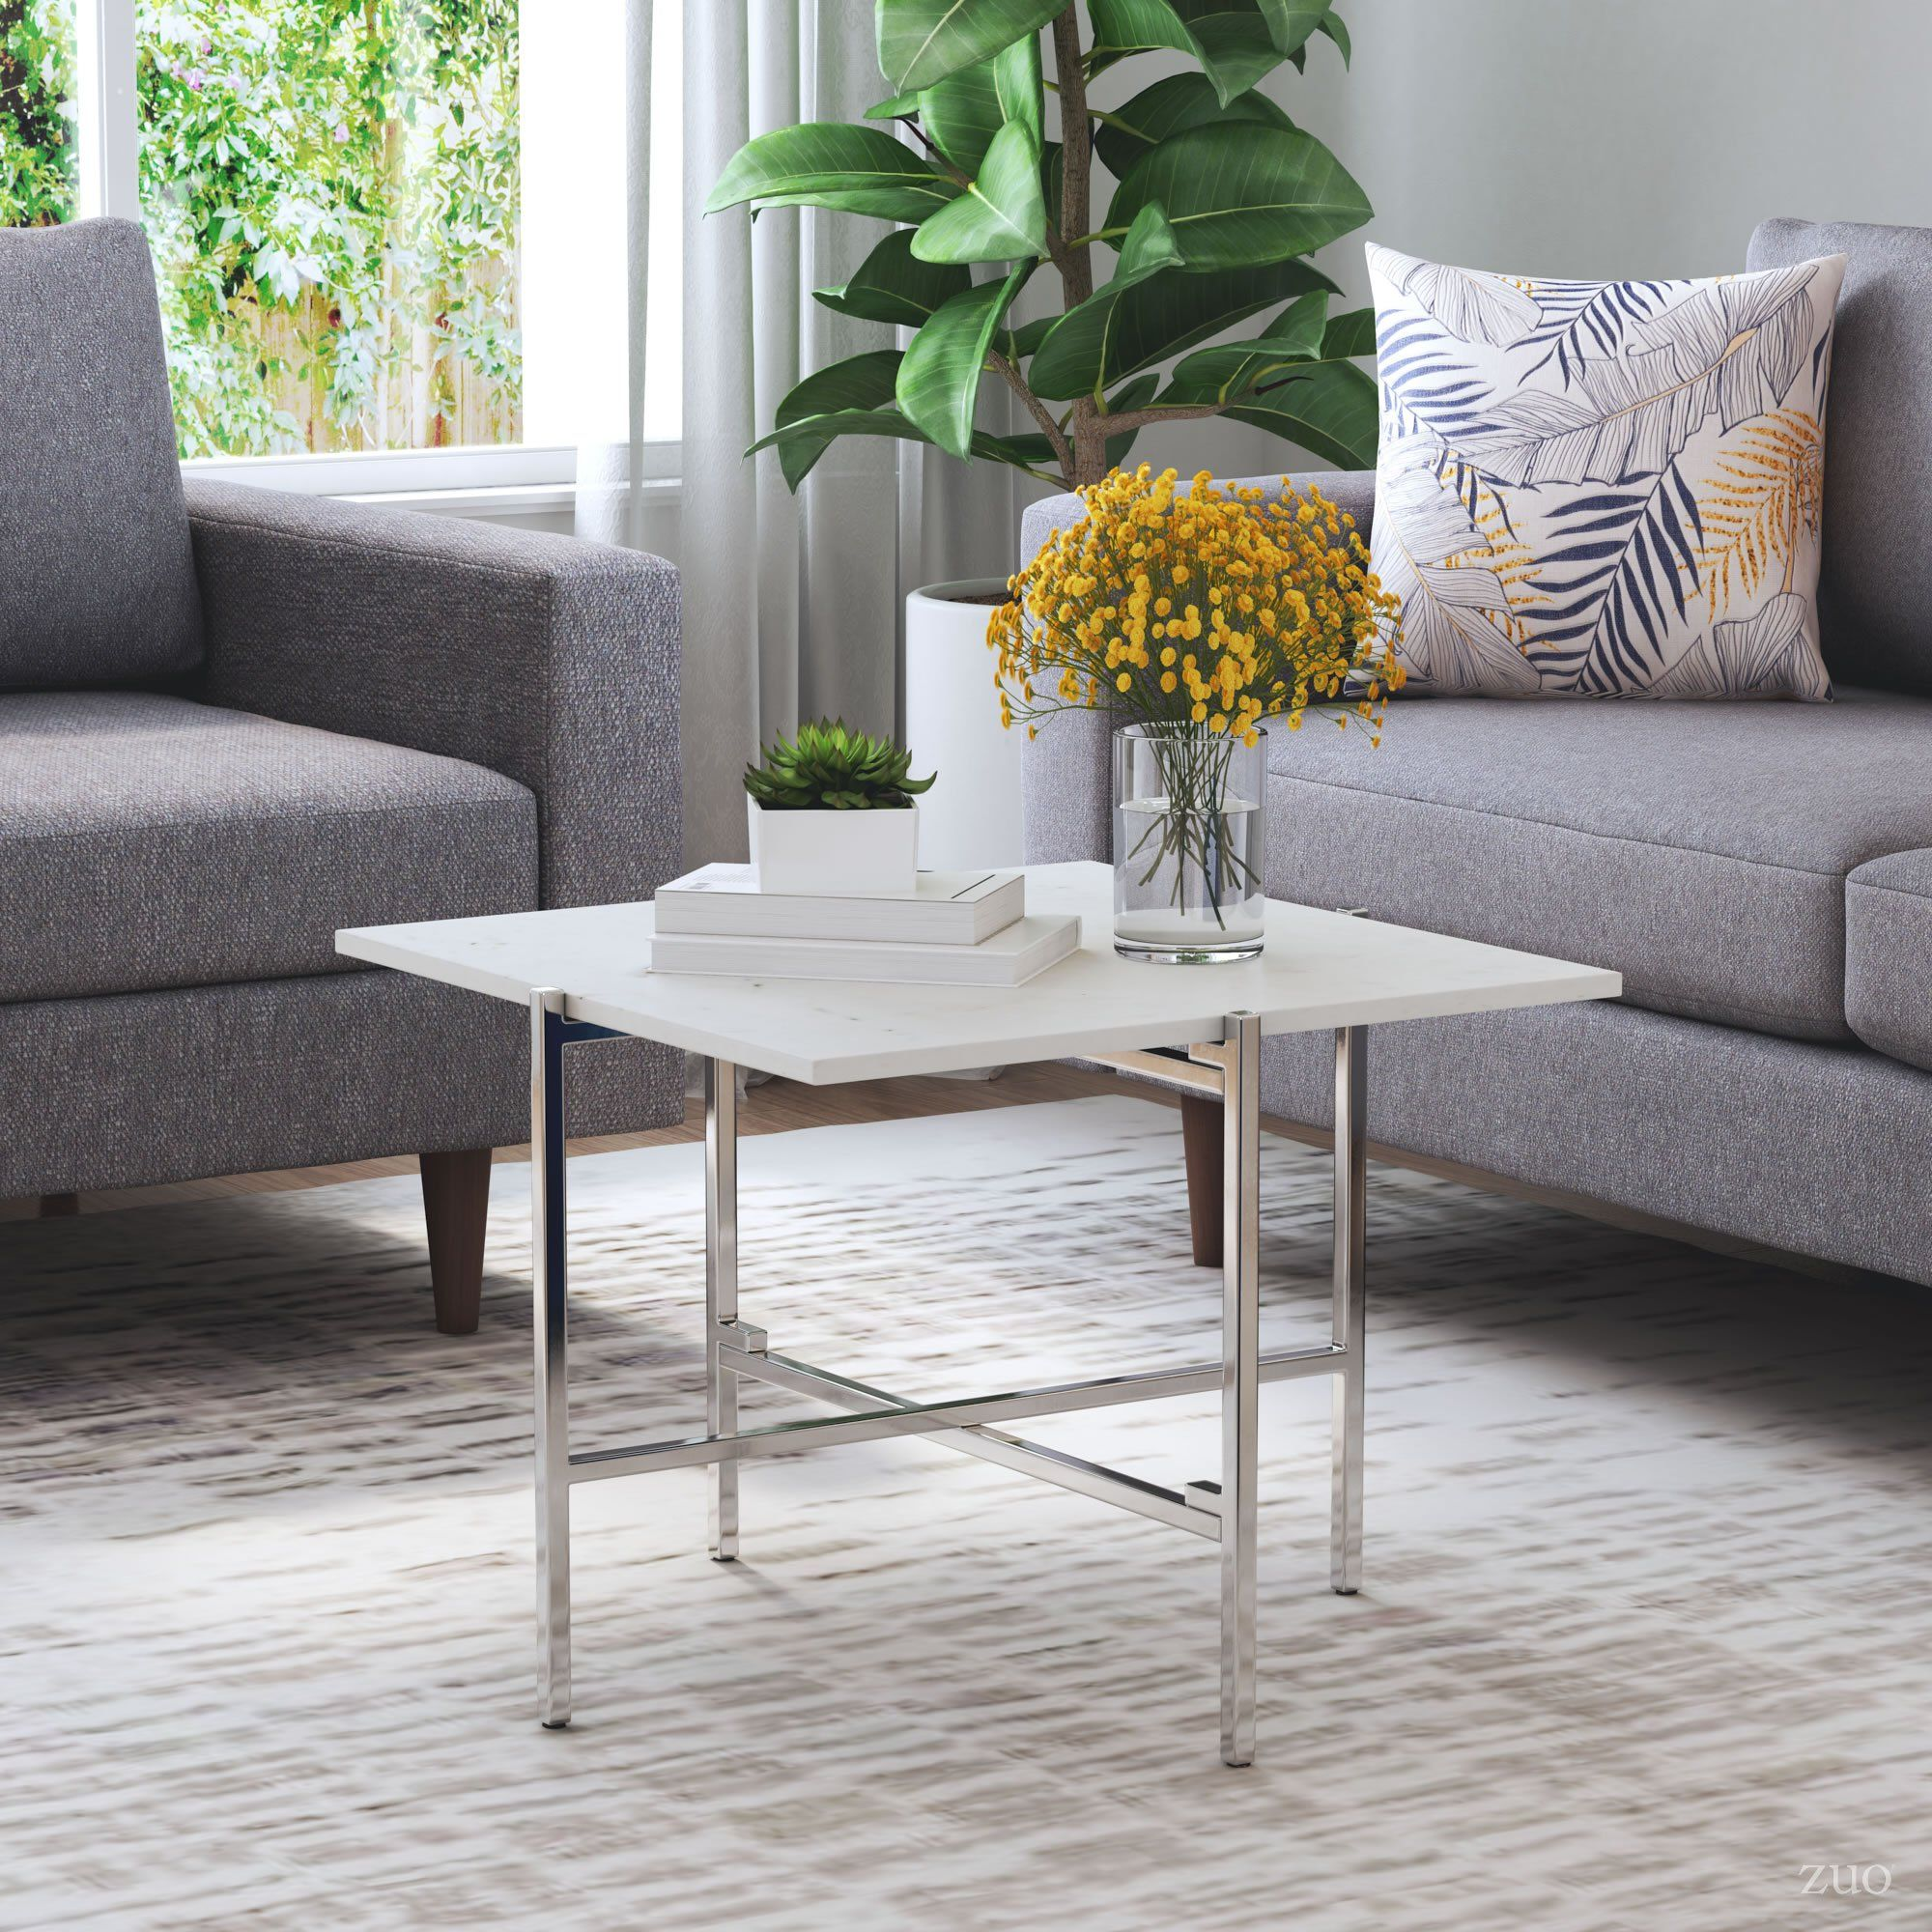 Minimalist White End Table Titan Rc Willey Furniture Store White Side Tables White End Tables Marble Side Tables [ 2000 x 2000 Pixel ]